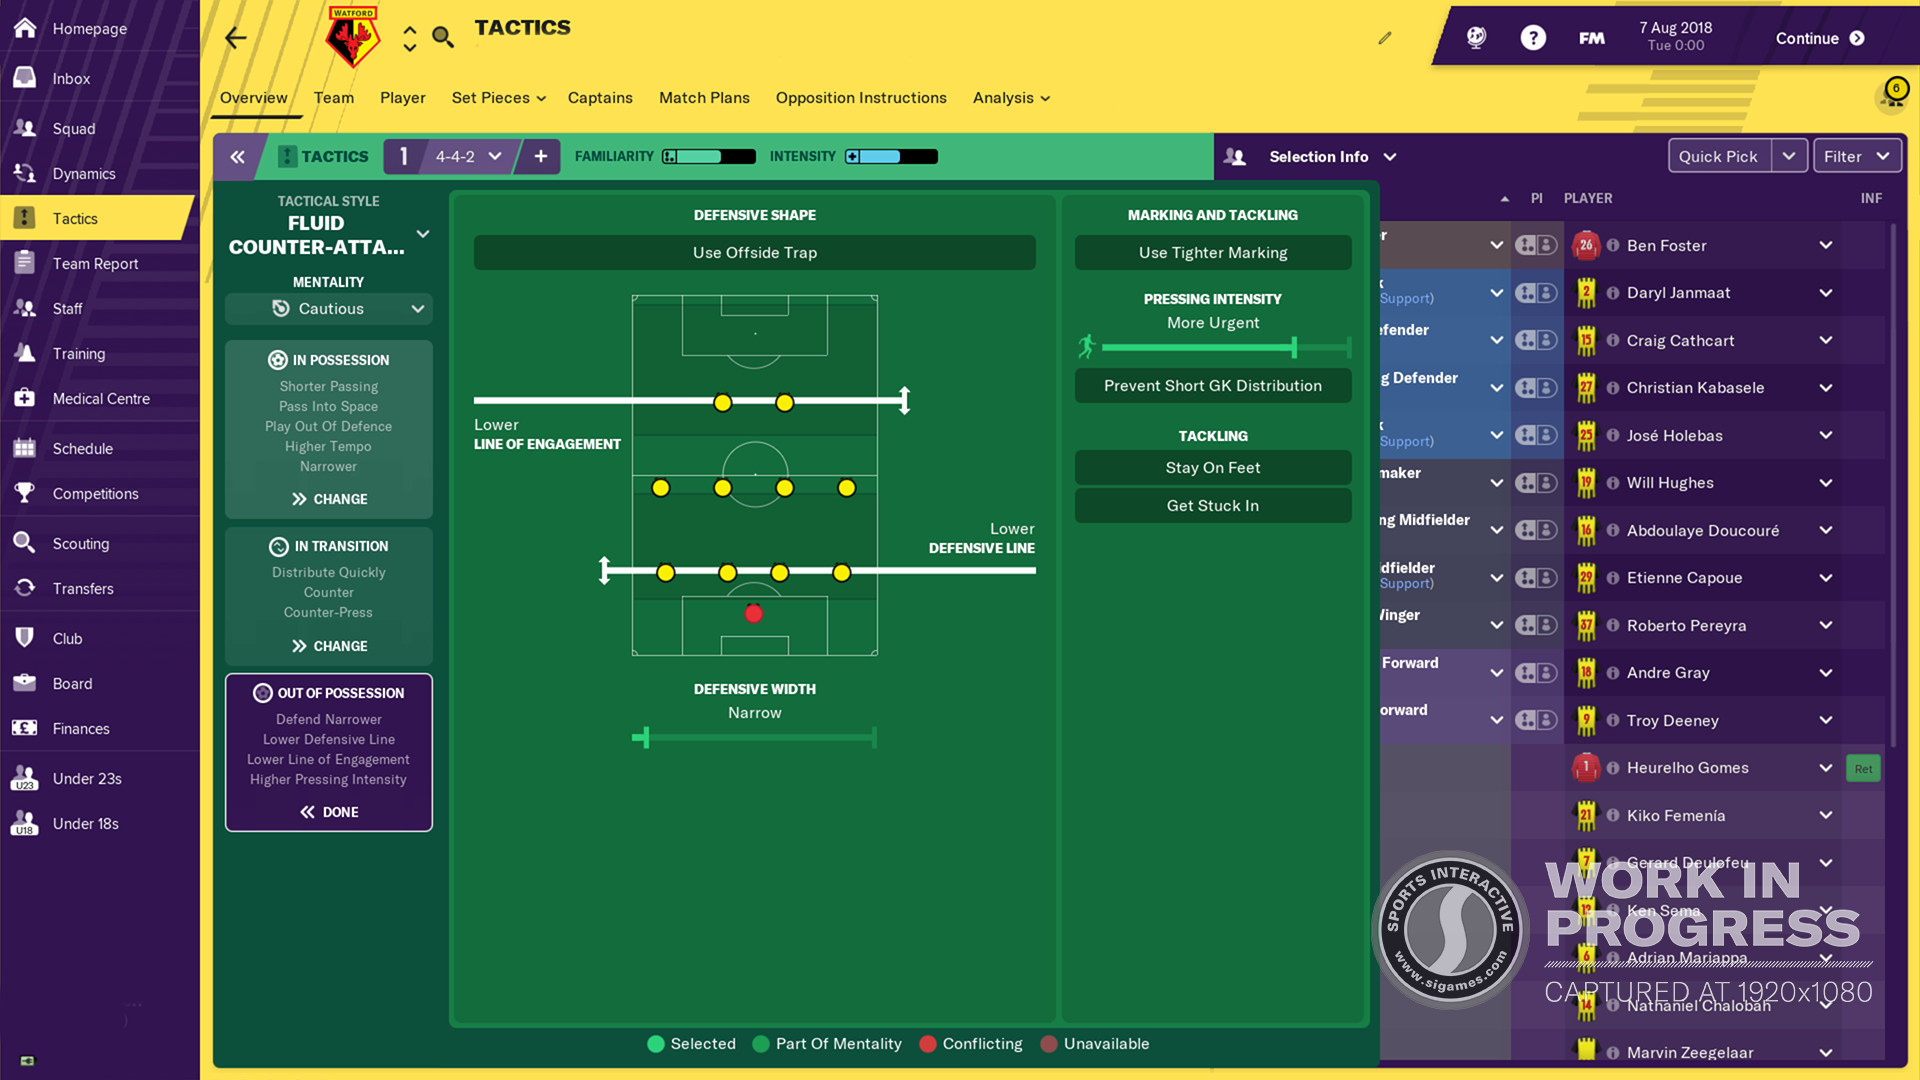 Football Manager 2019 Audio Pc Steam Guide Chaos Hour